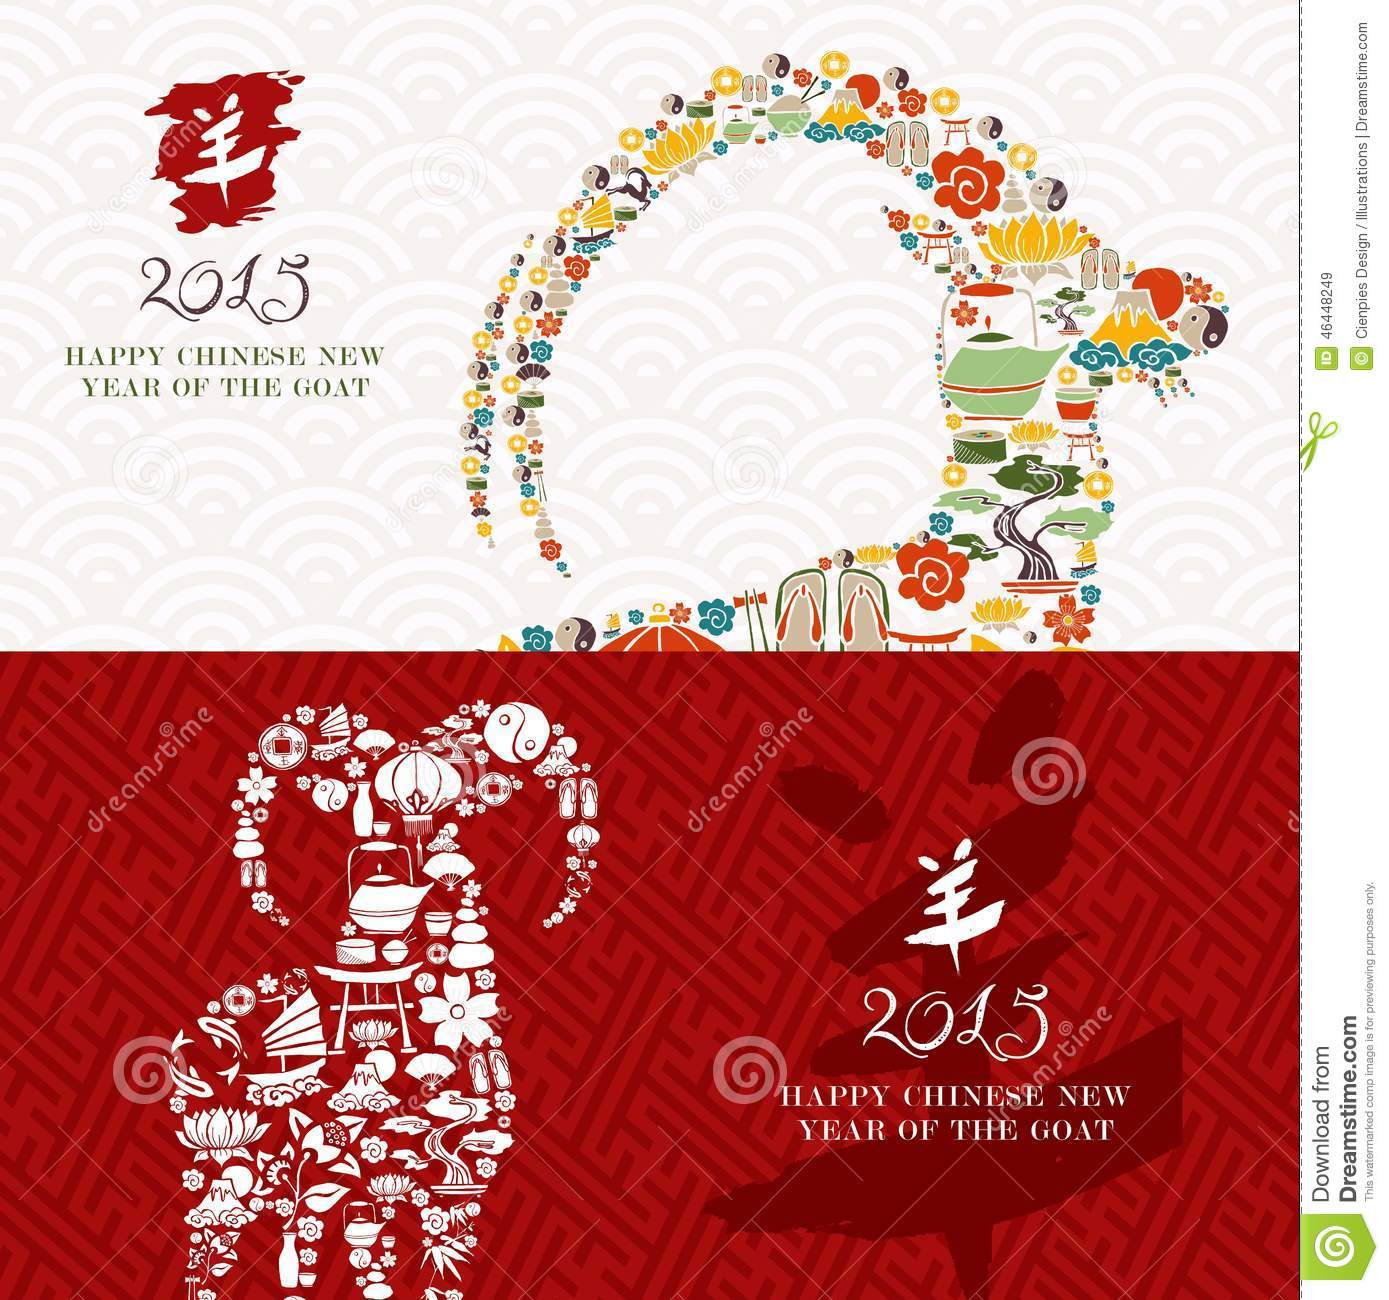 Chinese new year of the goat 2015 icons greeting cards set stock chinese new year of the goat 2015 icons greeting cards set m4hsunfo